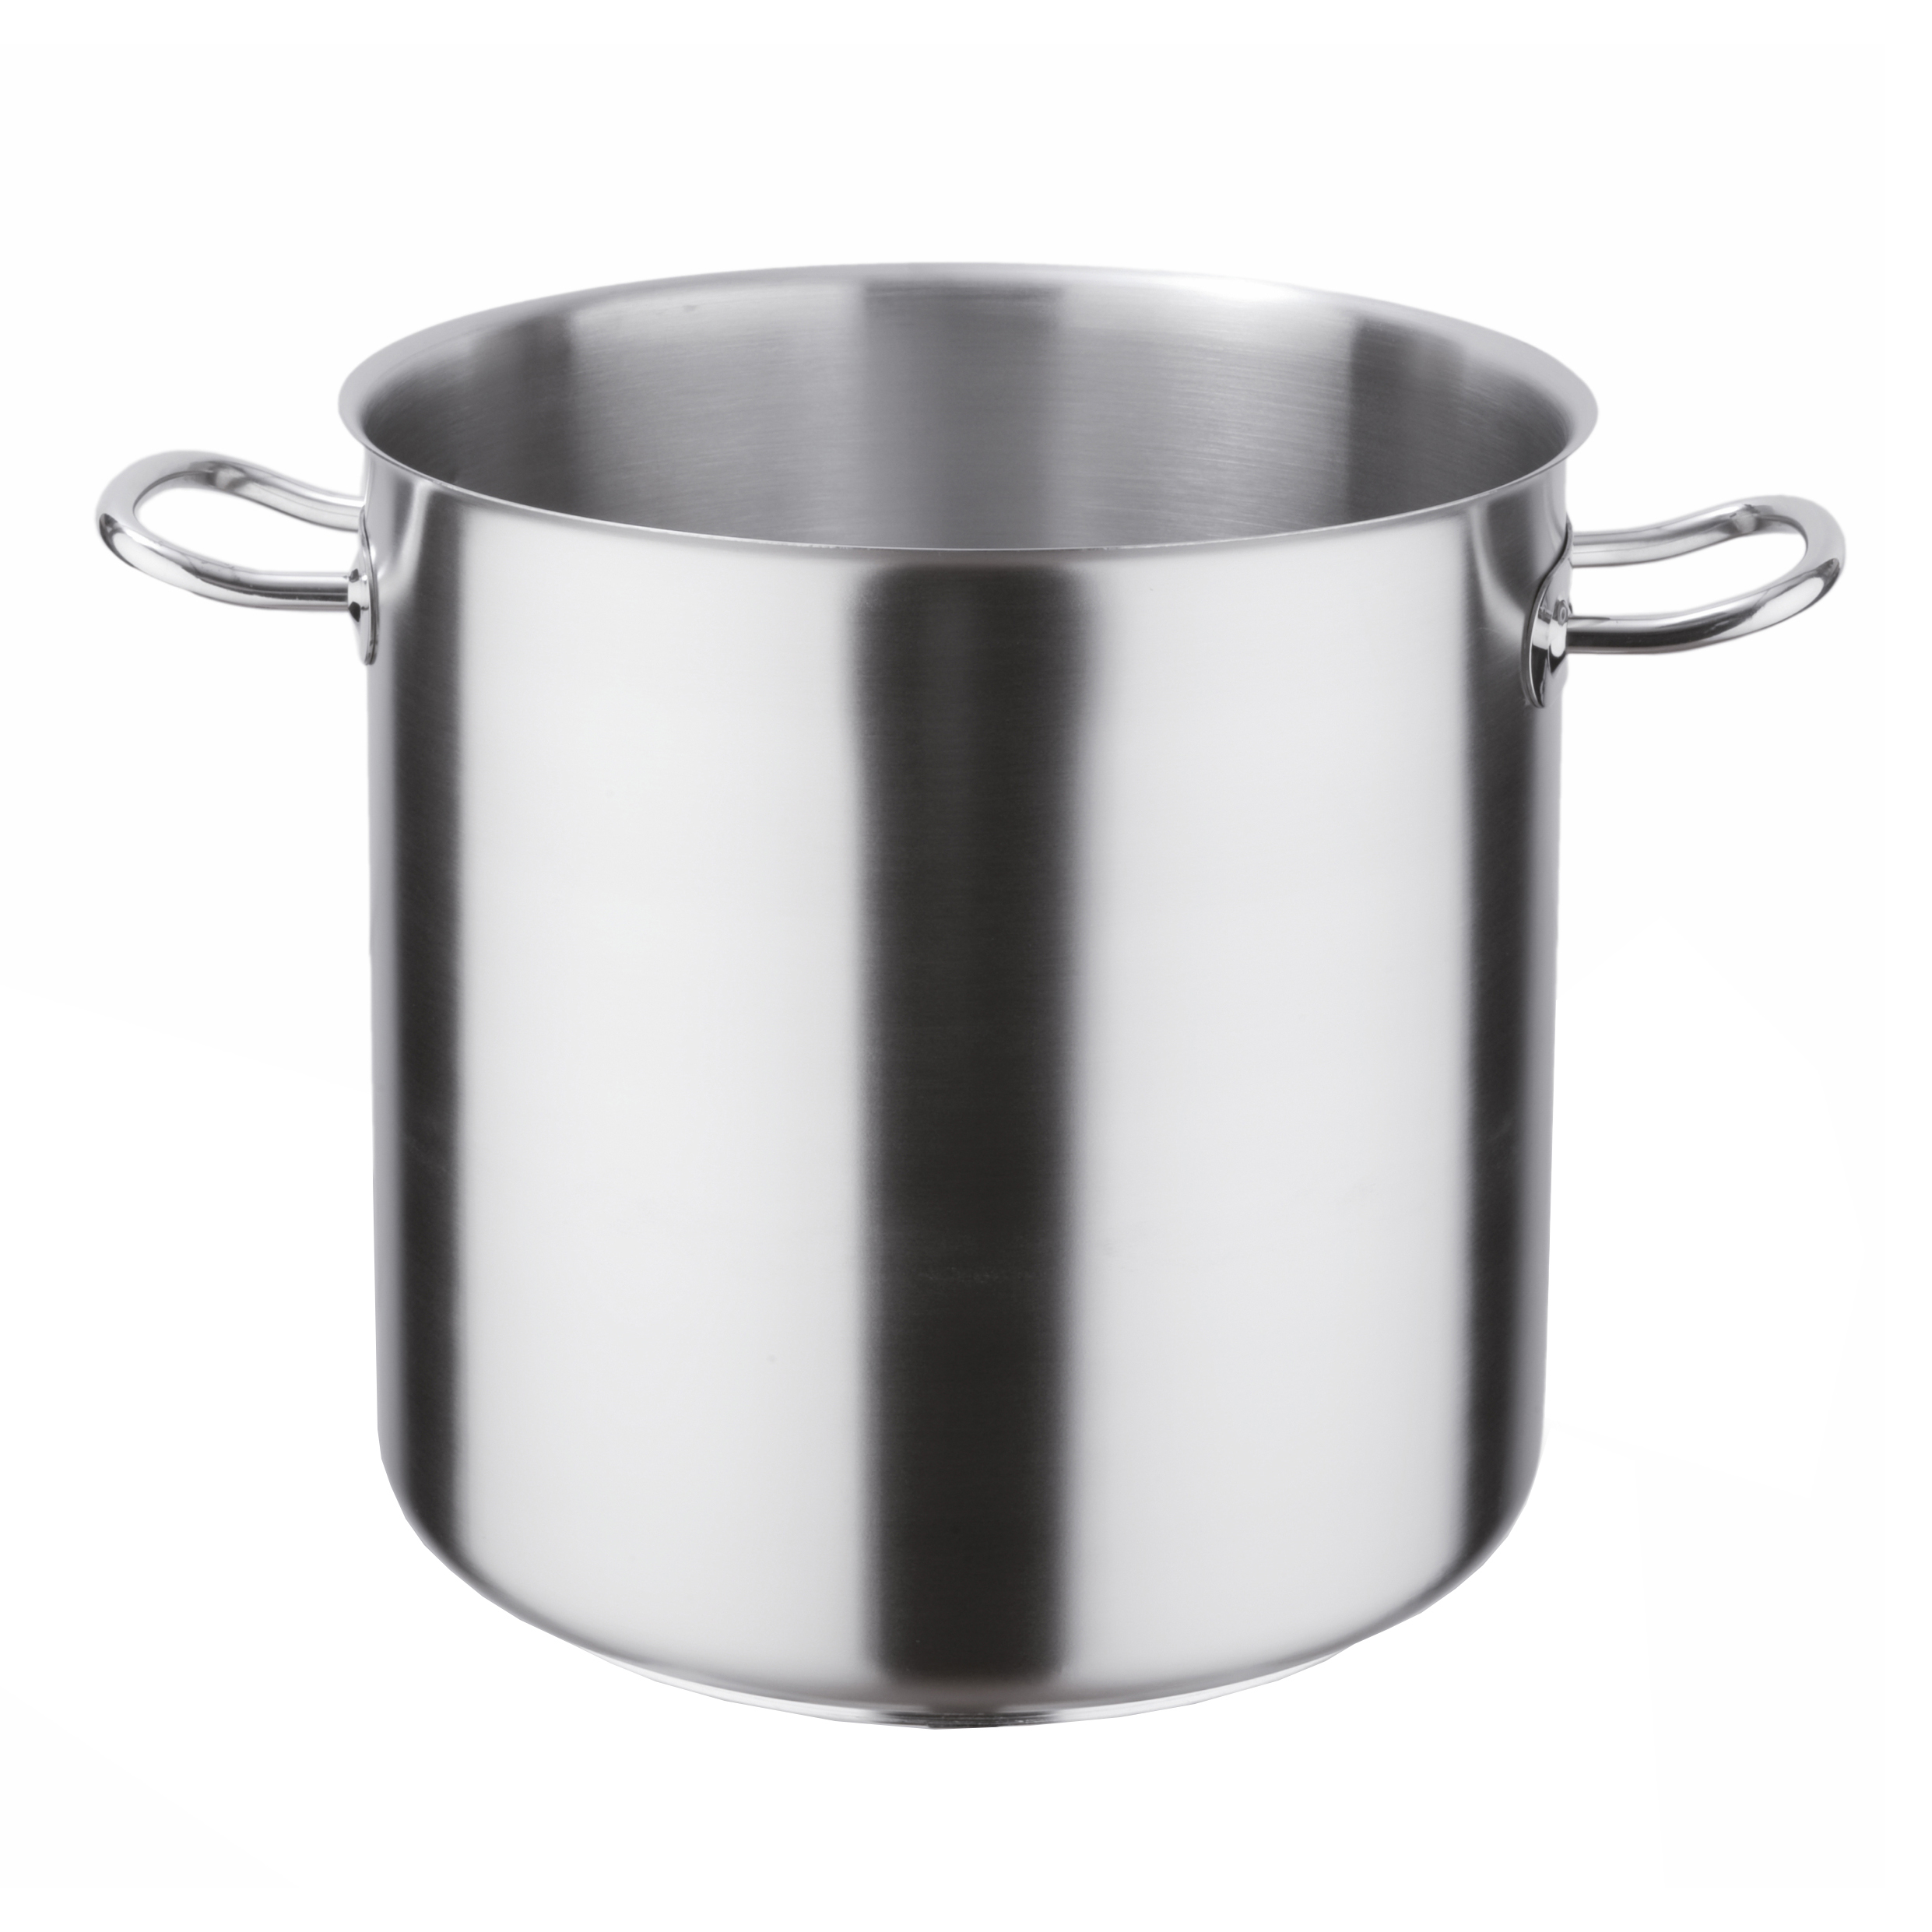 Vollrath V218032 stock pot